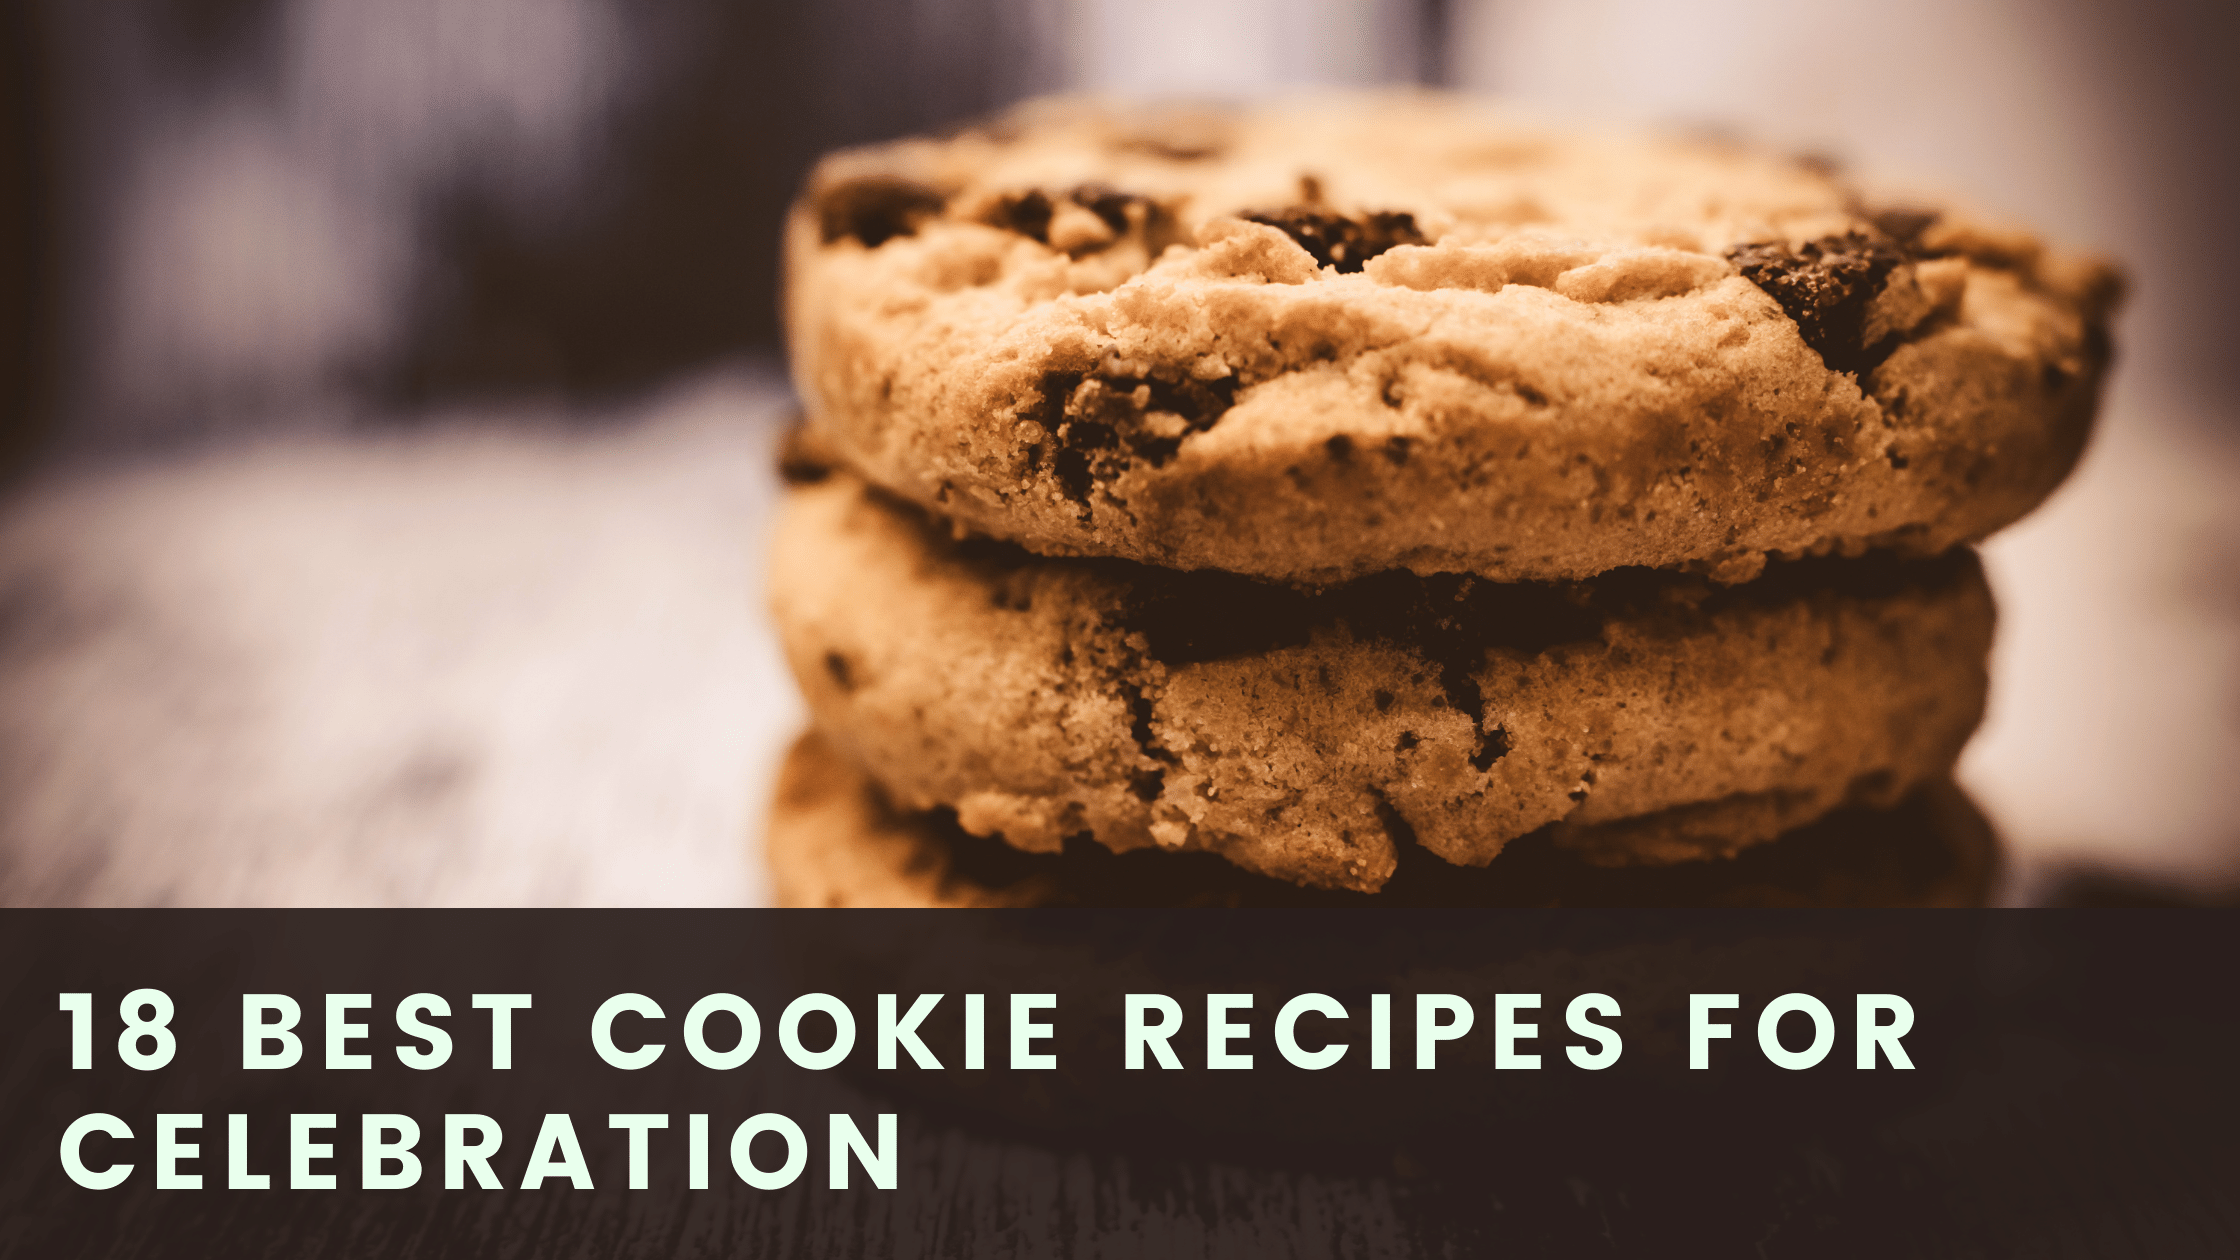 18 best Cookie Recipes For Celebration